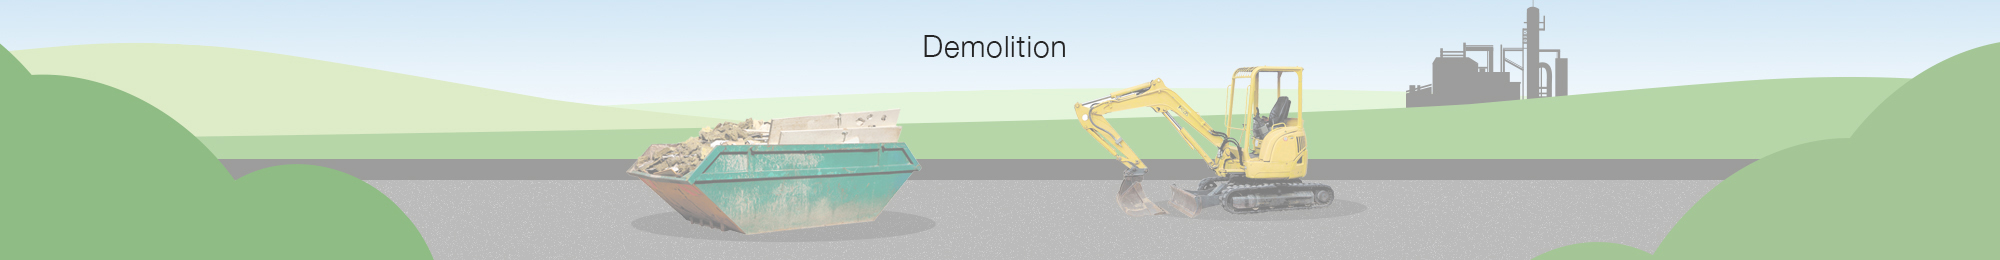 image of demolition services